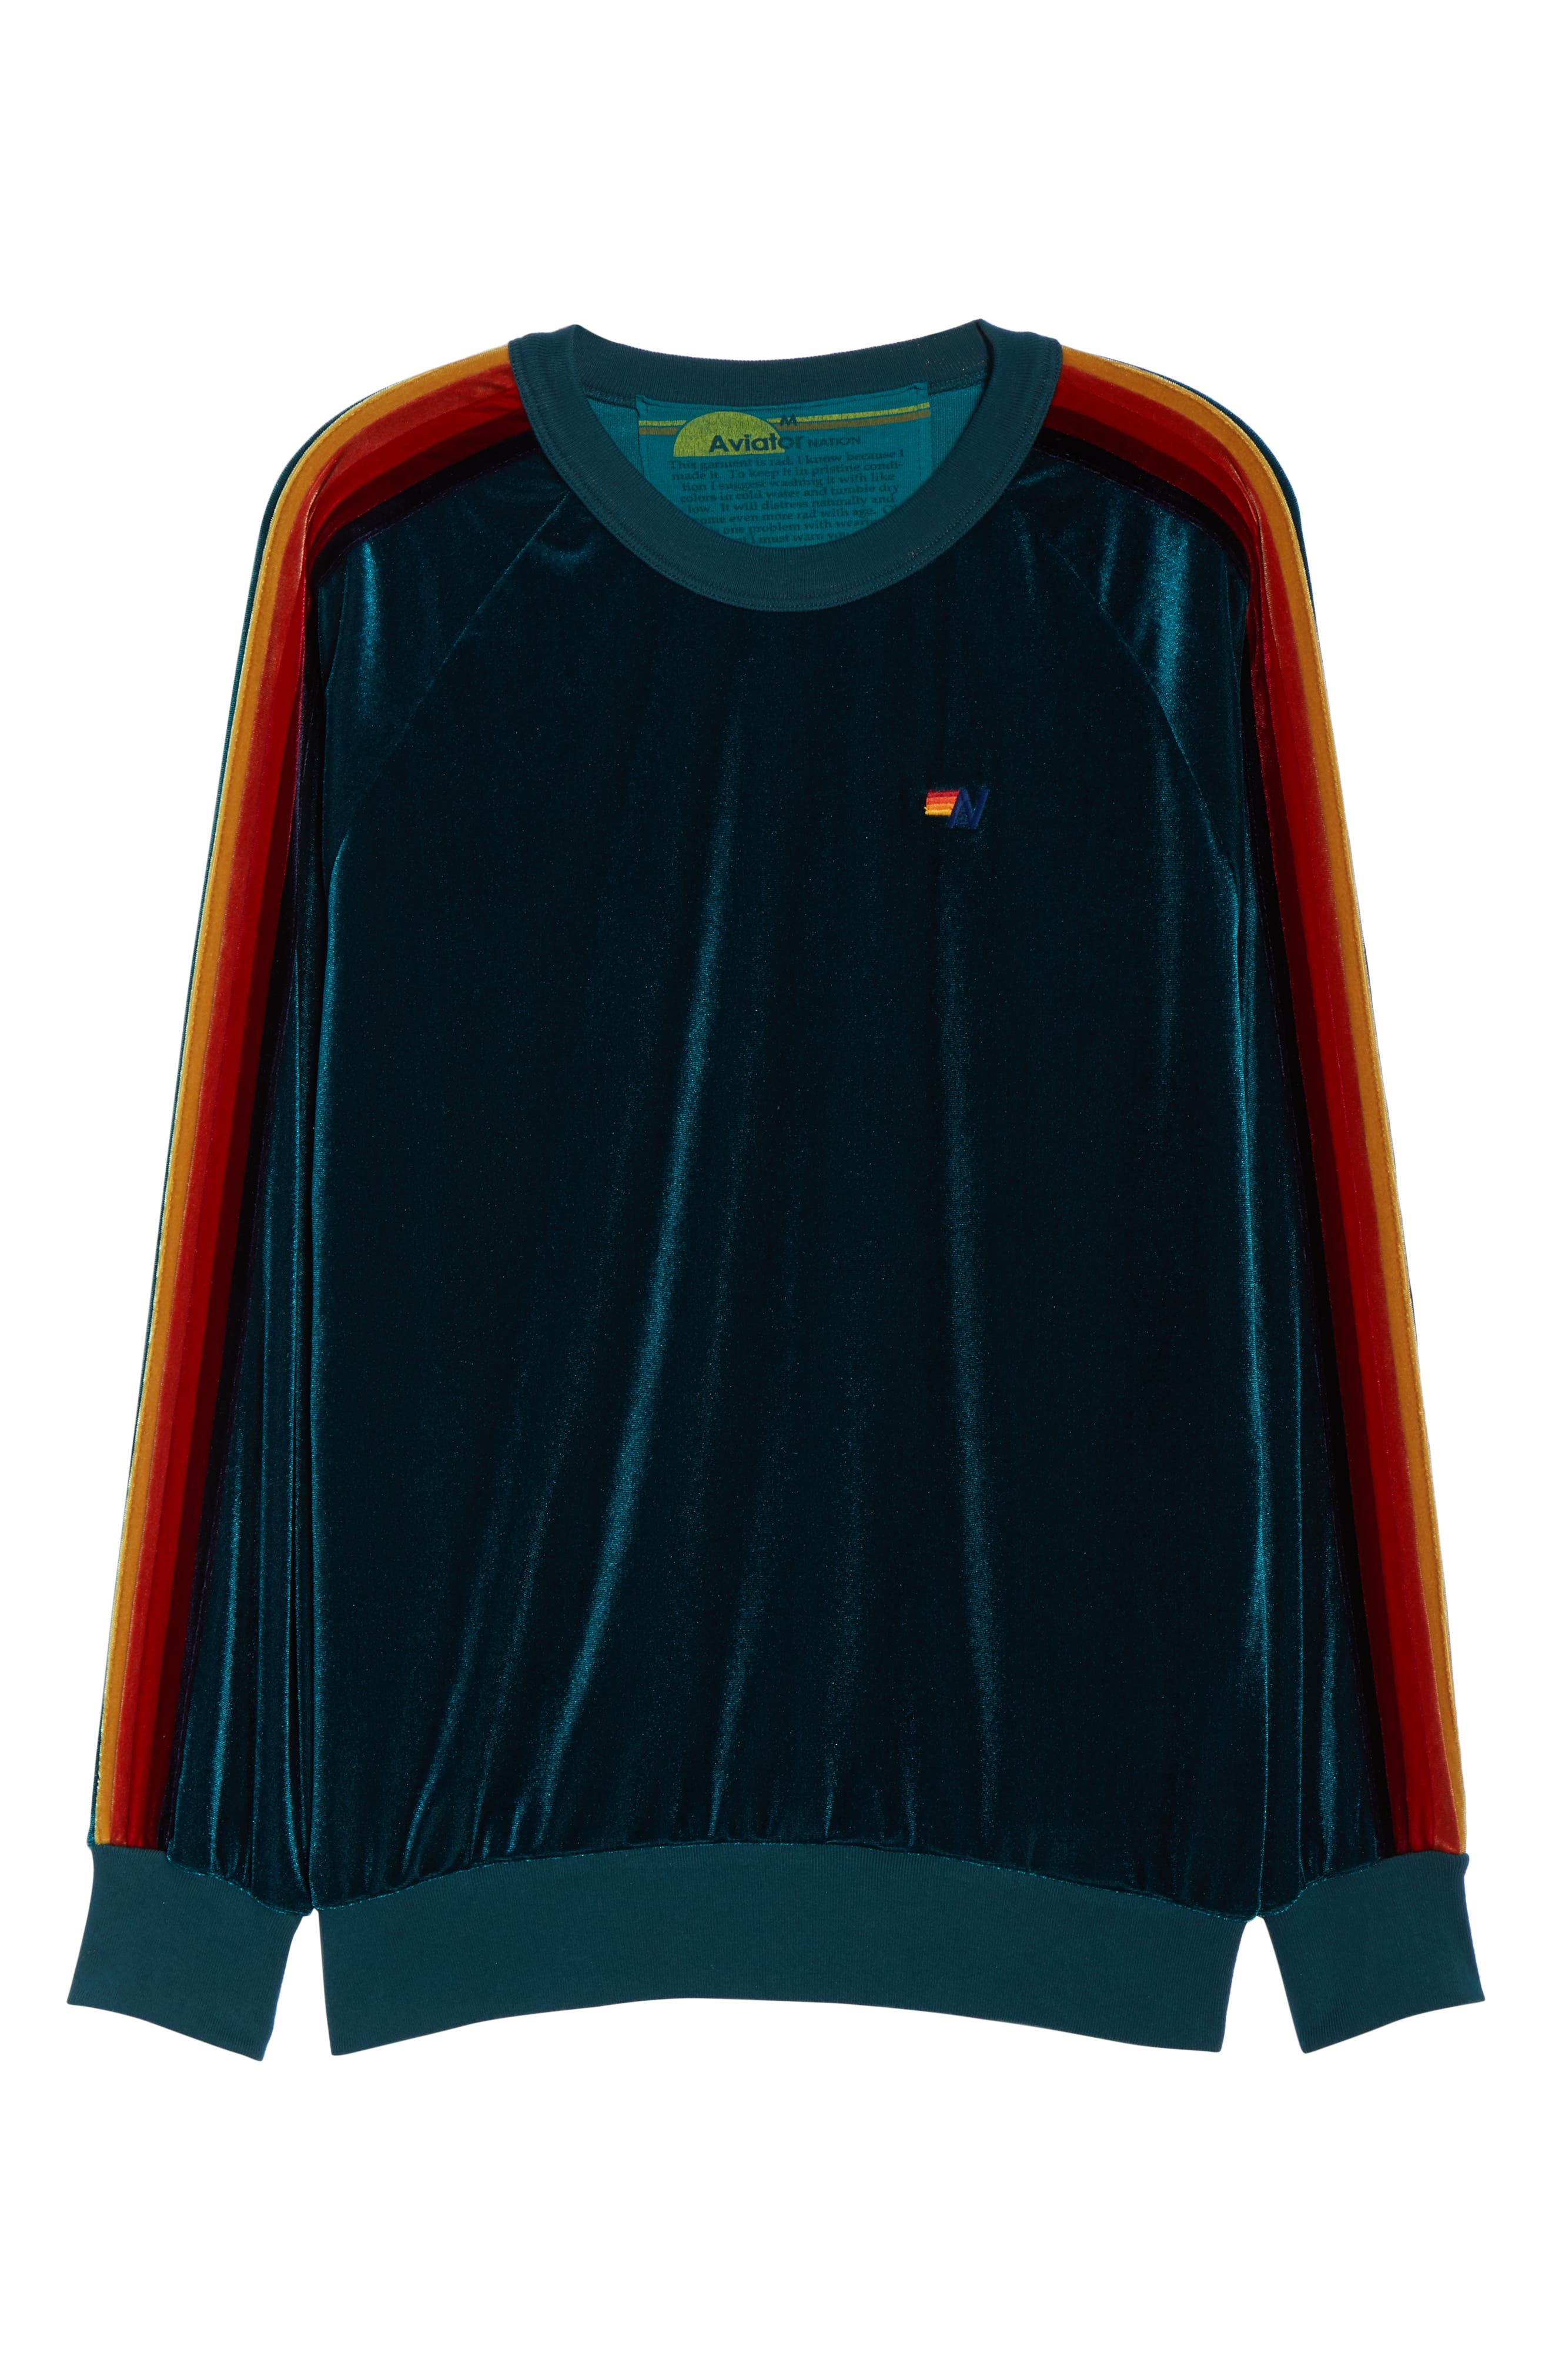 Velvet Crewneck Sweatshirt,                             Alternate thumbnail 7, color,                             300